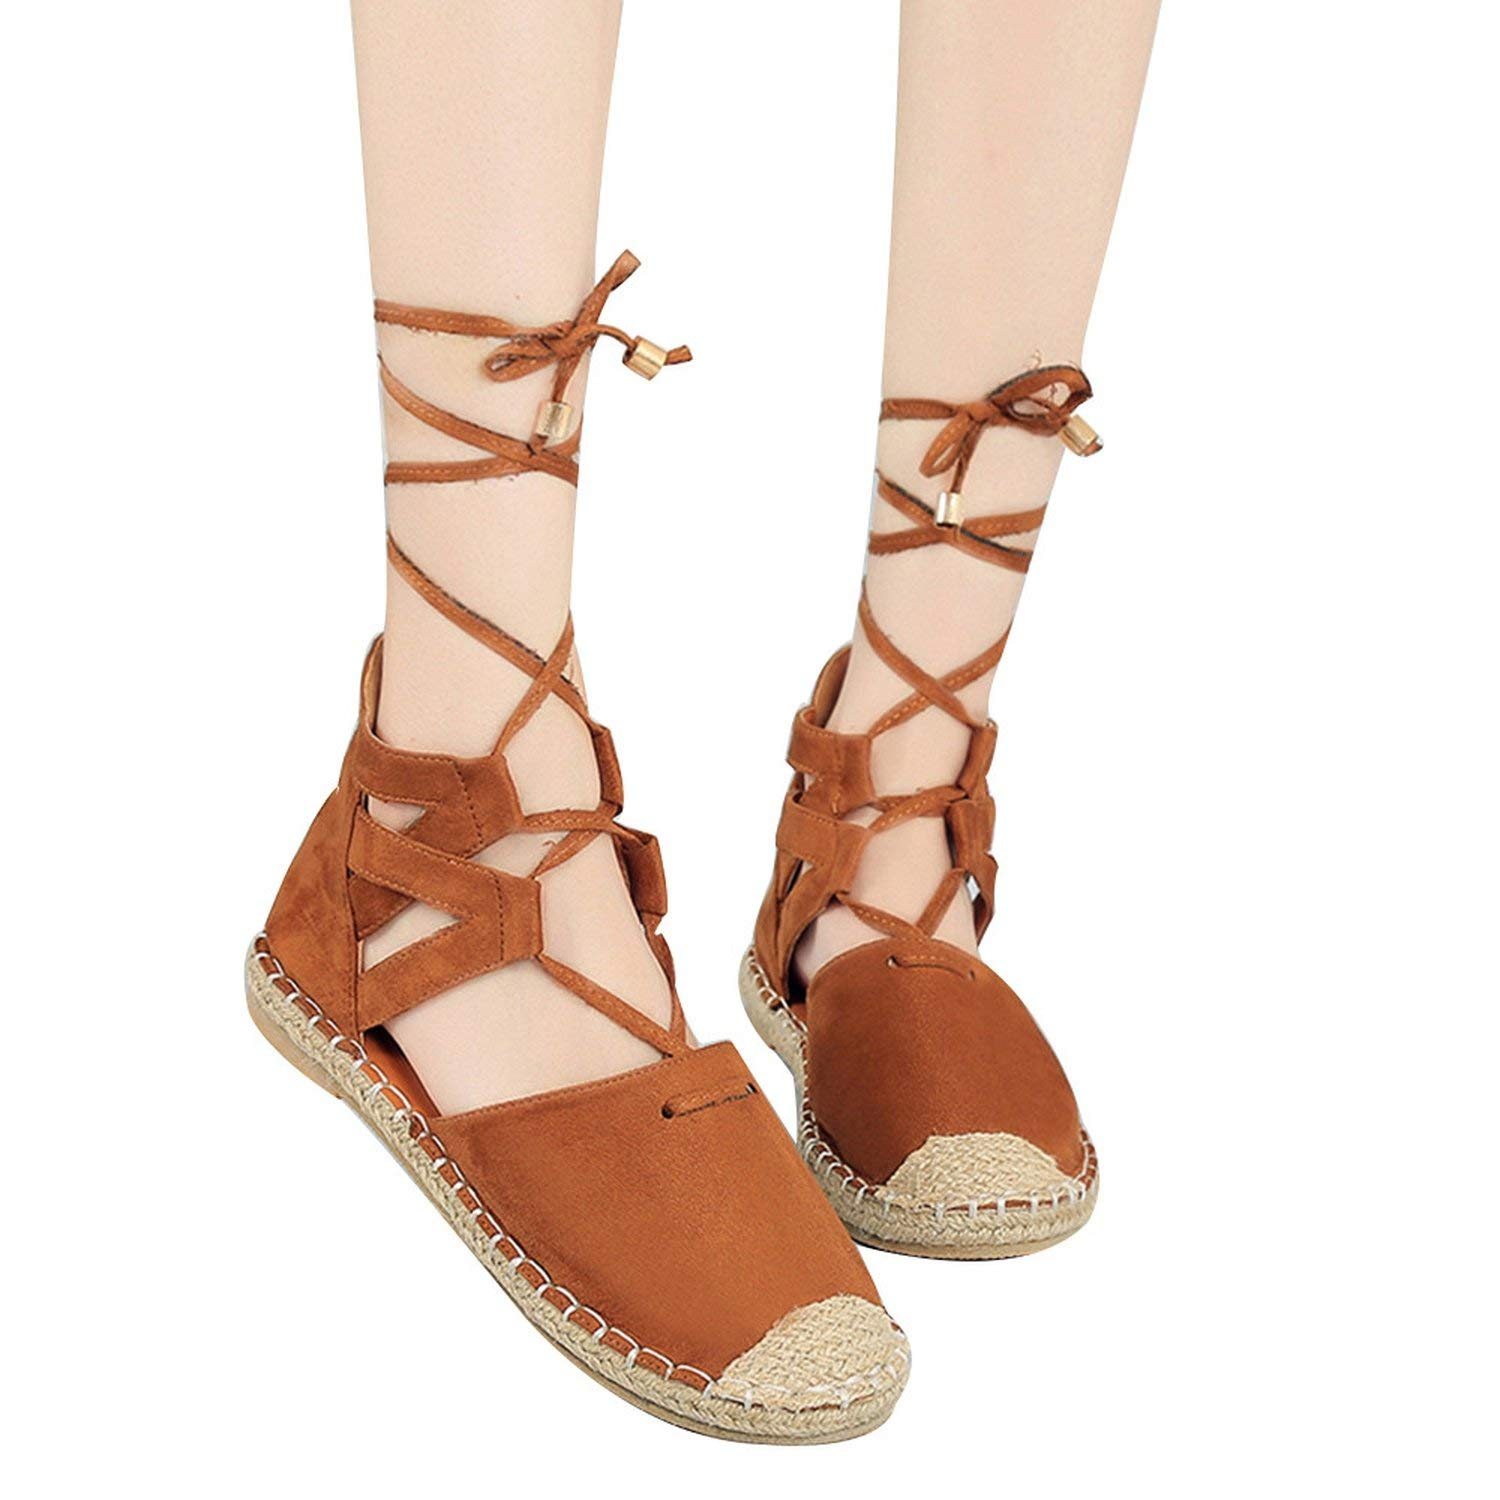 5619268fa17e Cool Cj Zapatos Mujer Ladies Bandage Sandals Women Flock Ankle Strap Lace  up Shoes Female Beach